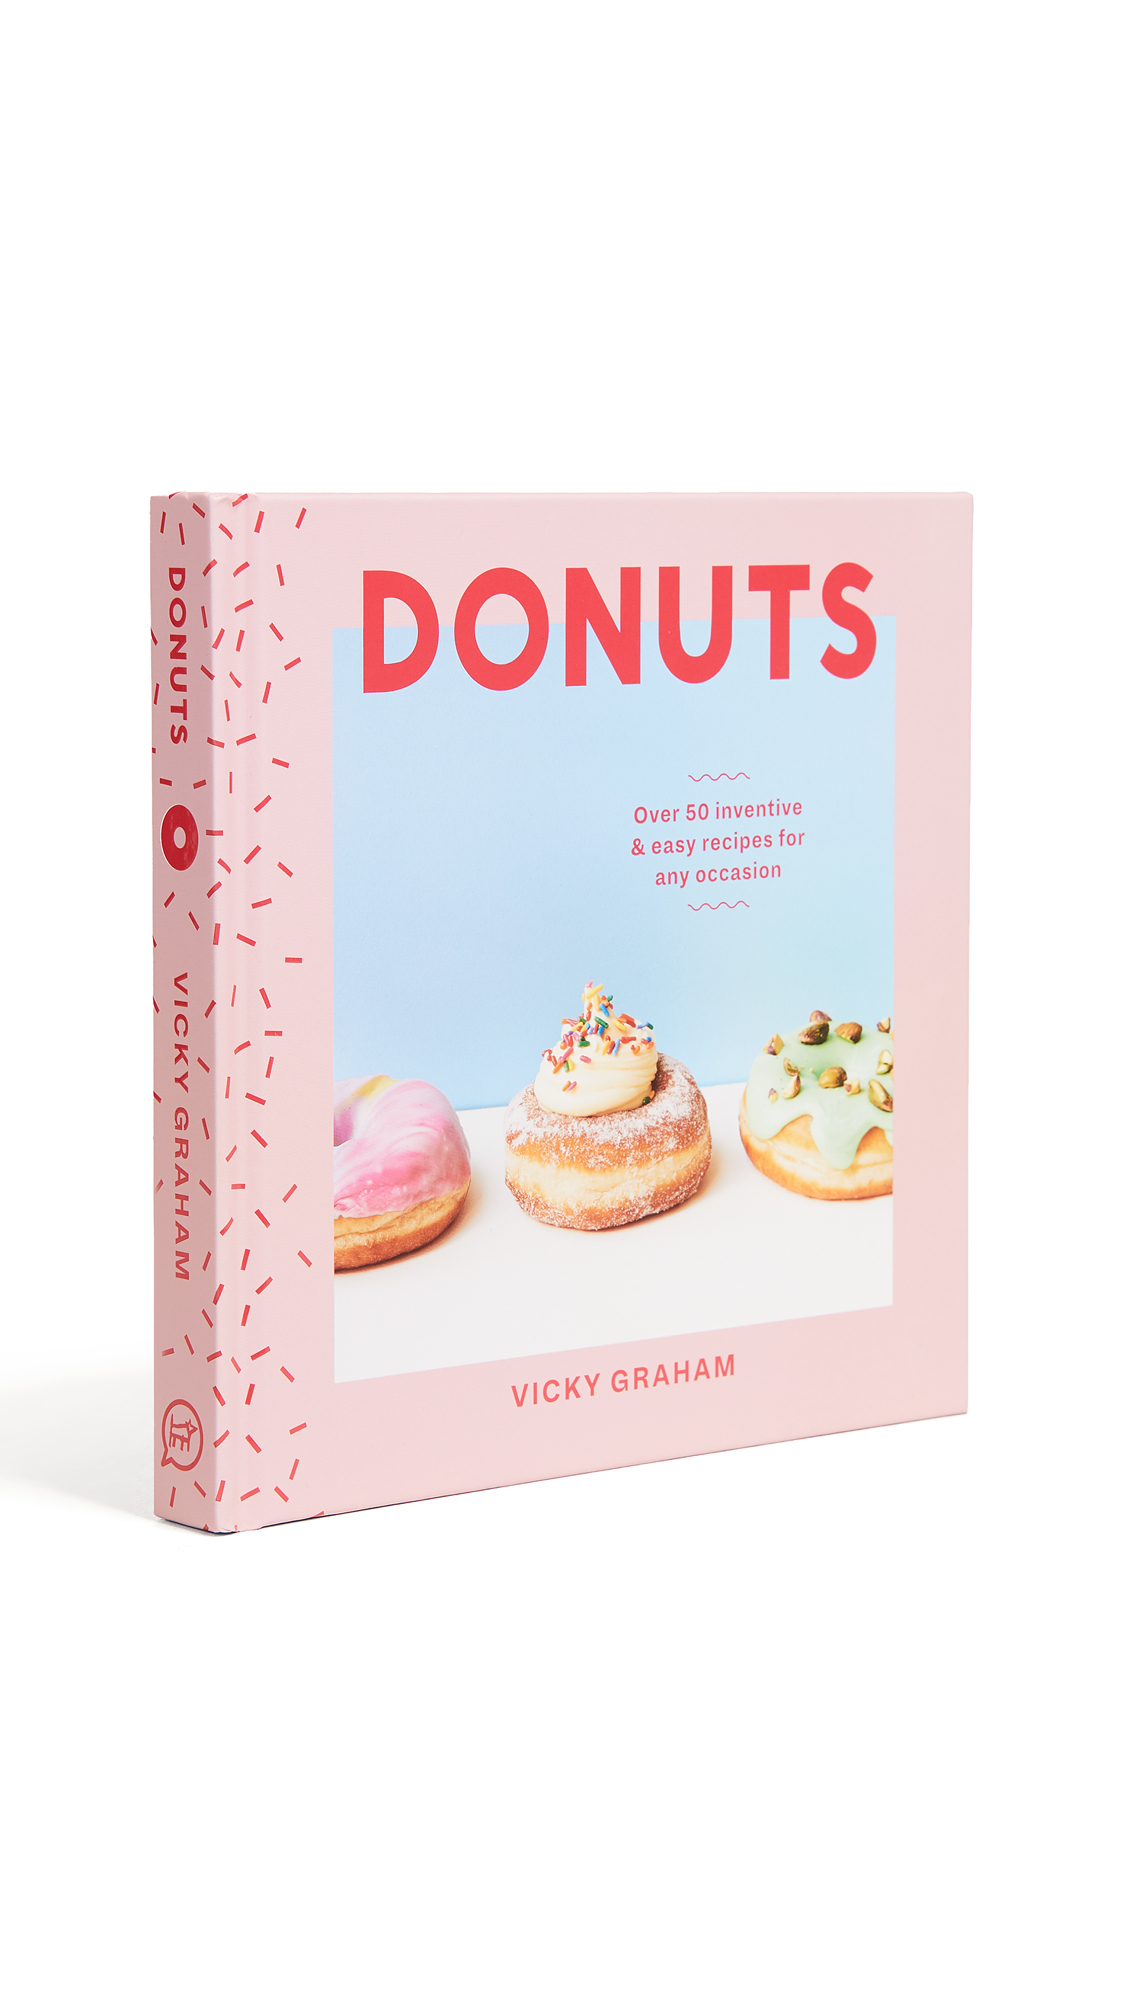 donuts over 50 inventive and easy recipes for any occasion